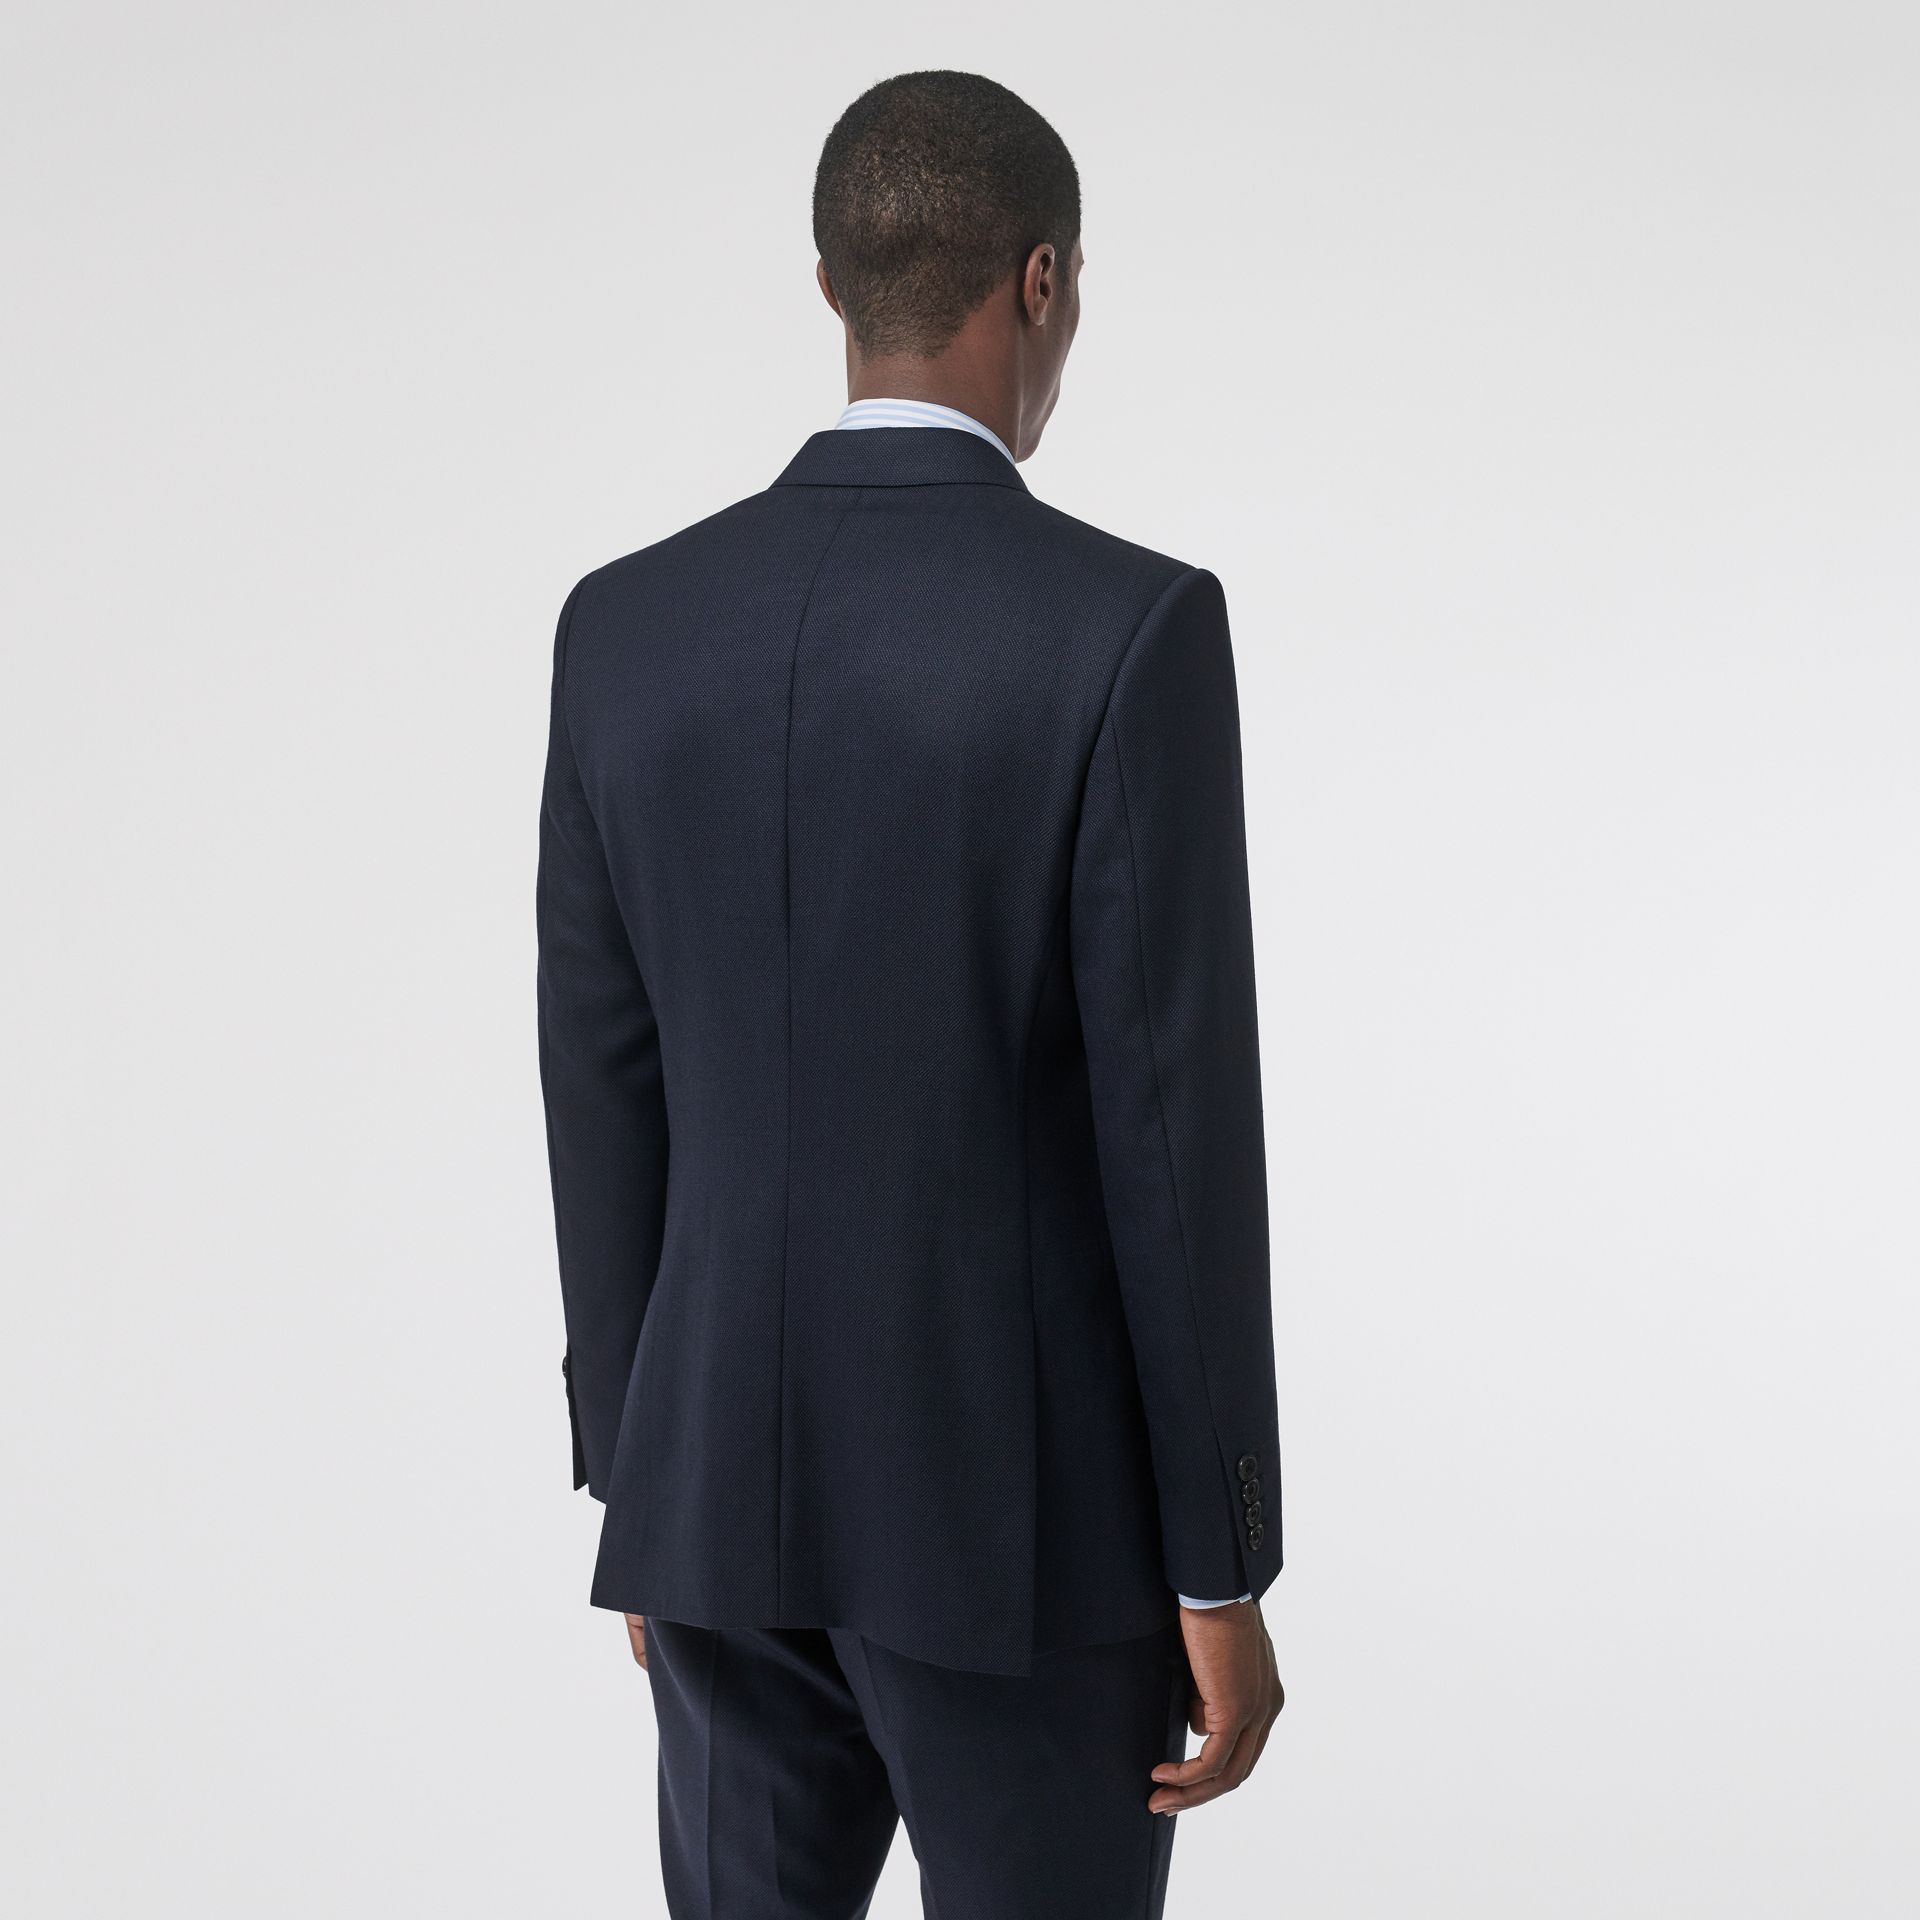 English Fit Birdseye Wool Cashmere Suit in Navy Blue | Burberry Hong Kong S.A.R - gallery image 2